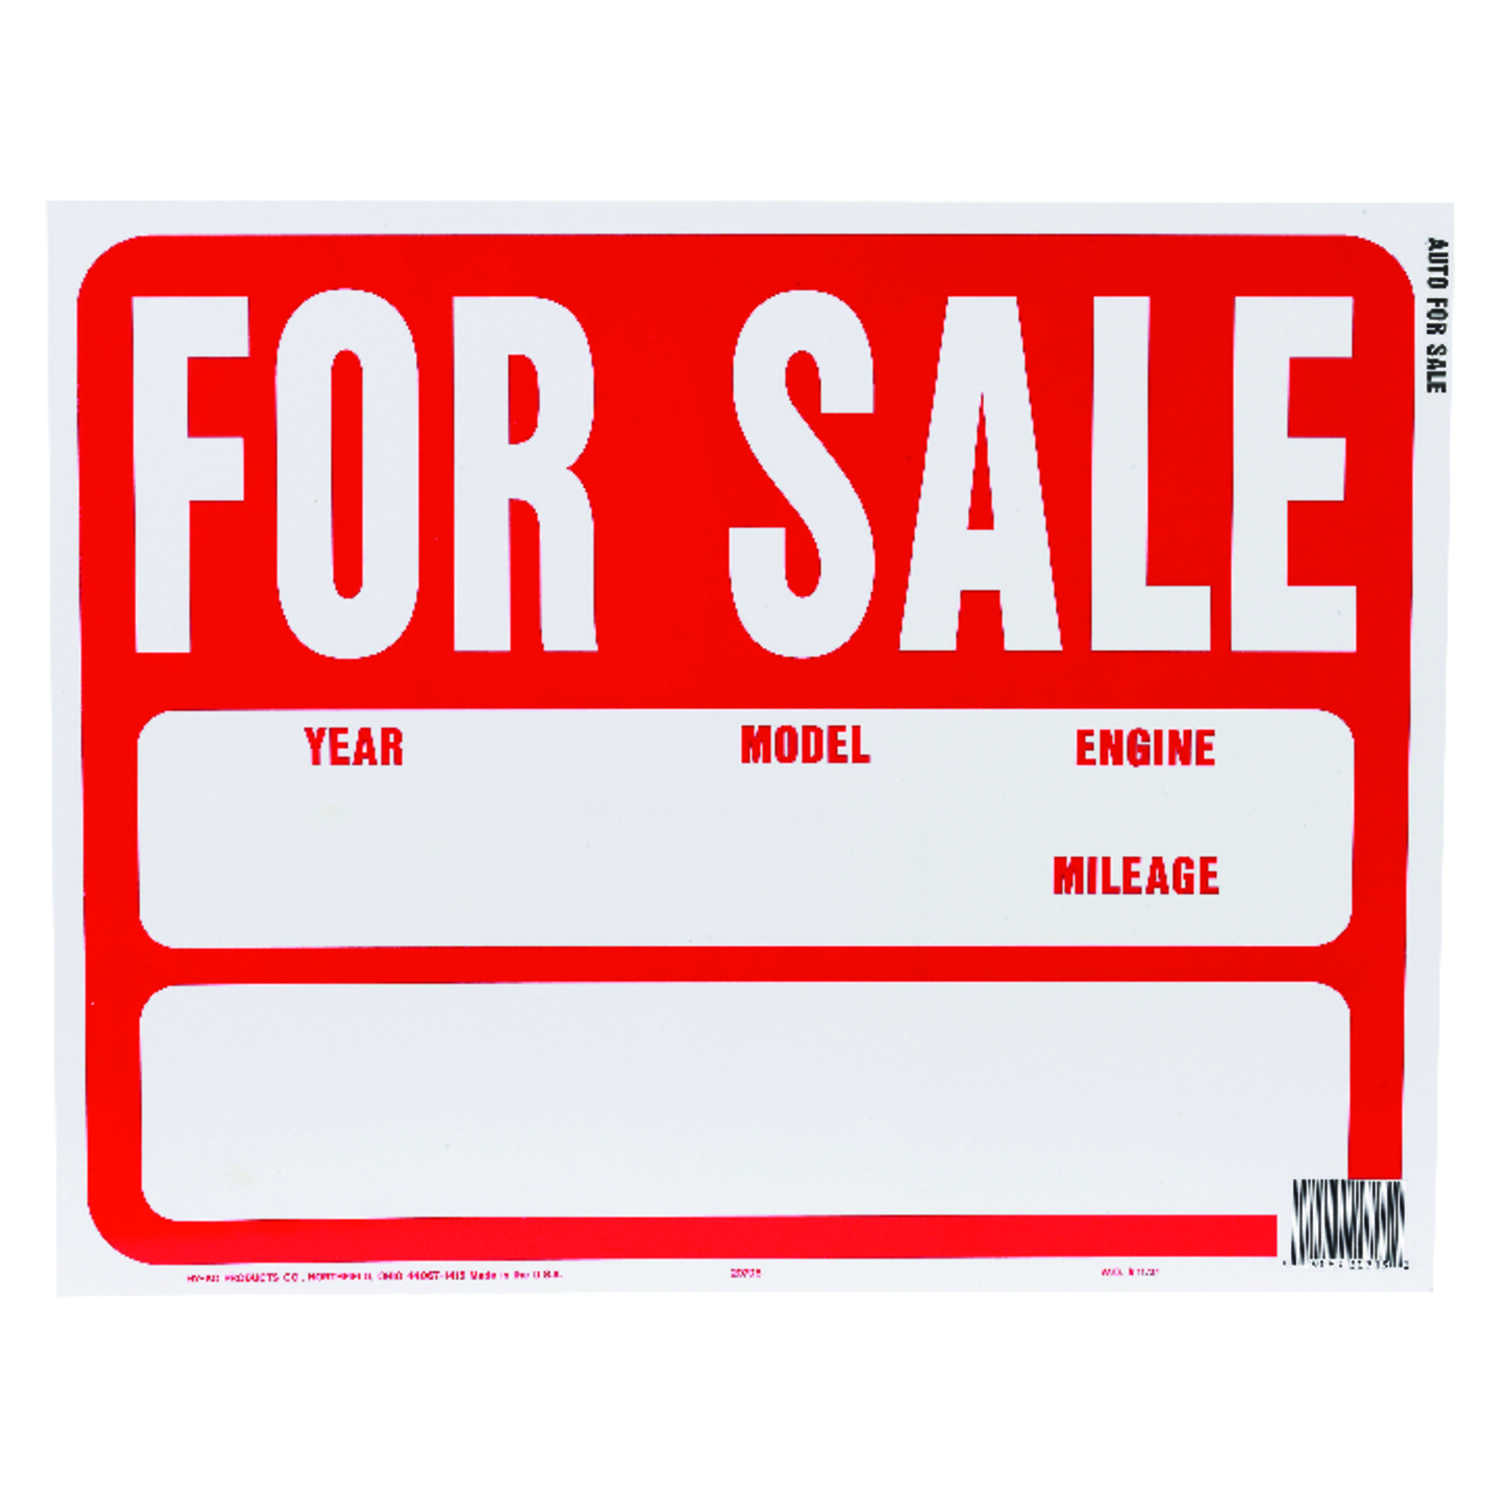 Hy-Ko  English  For Sale (Auto)  Sign  Plastic  15 in. H x 19 in. W